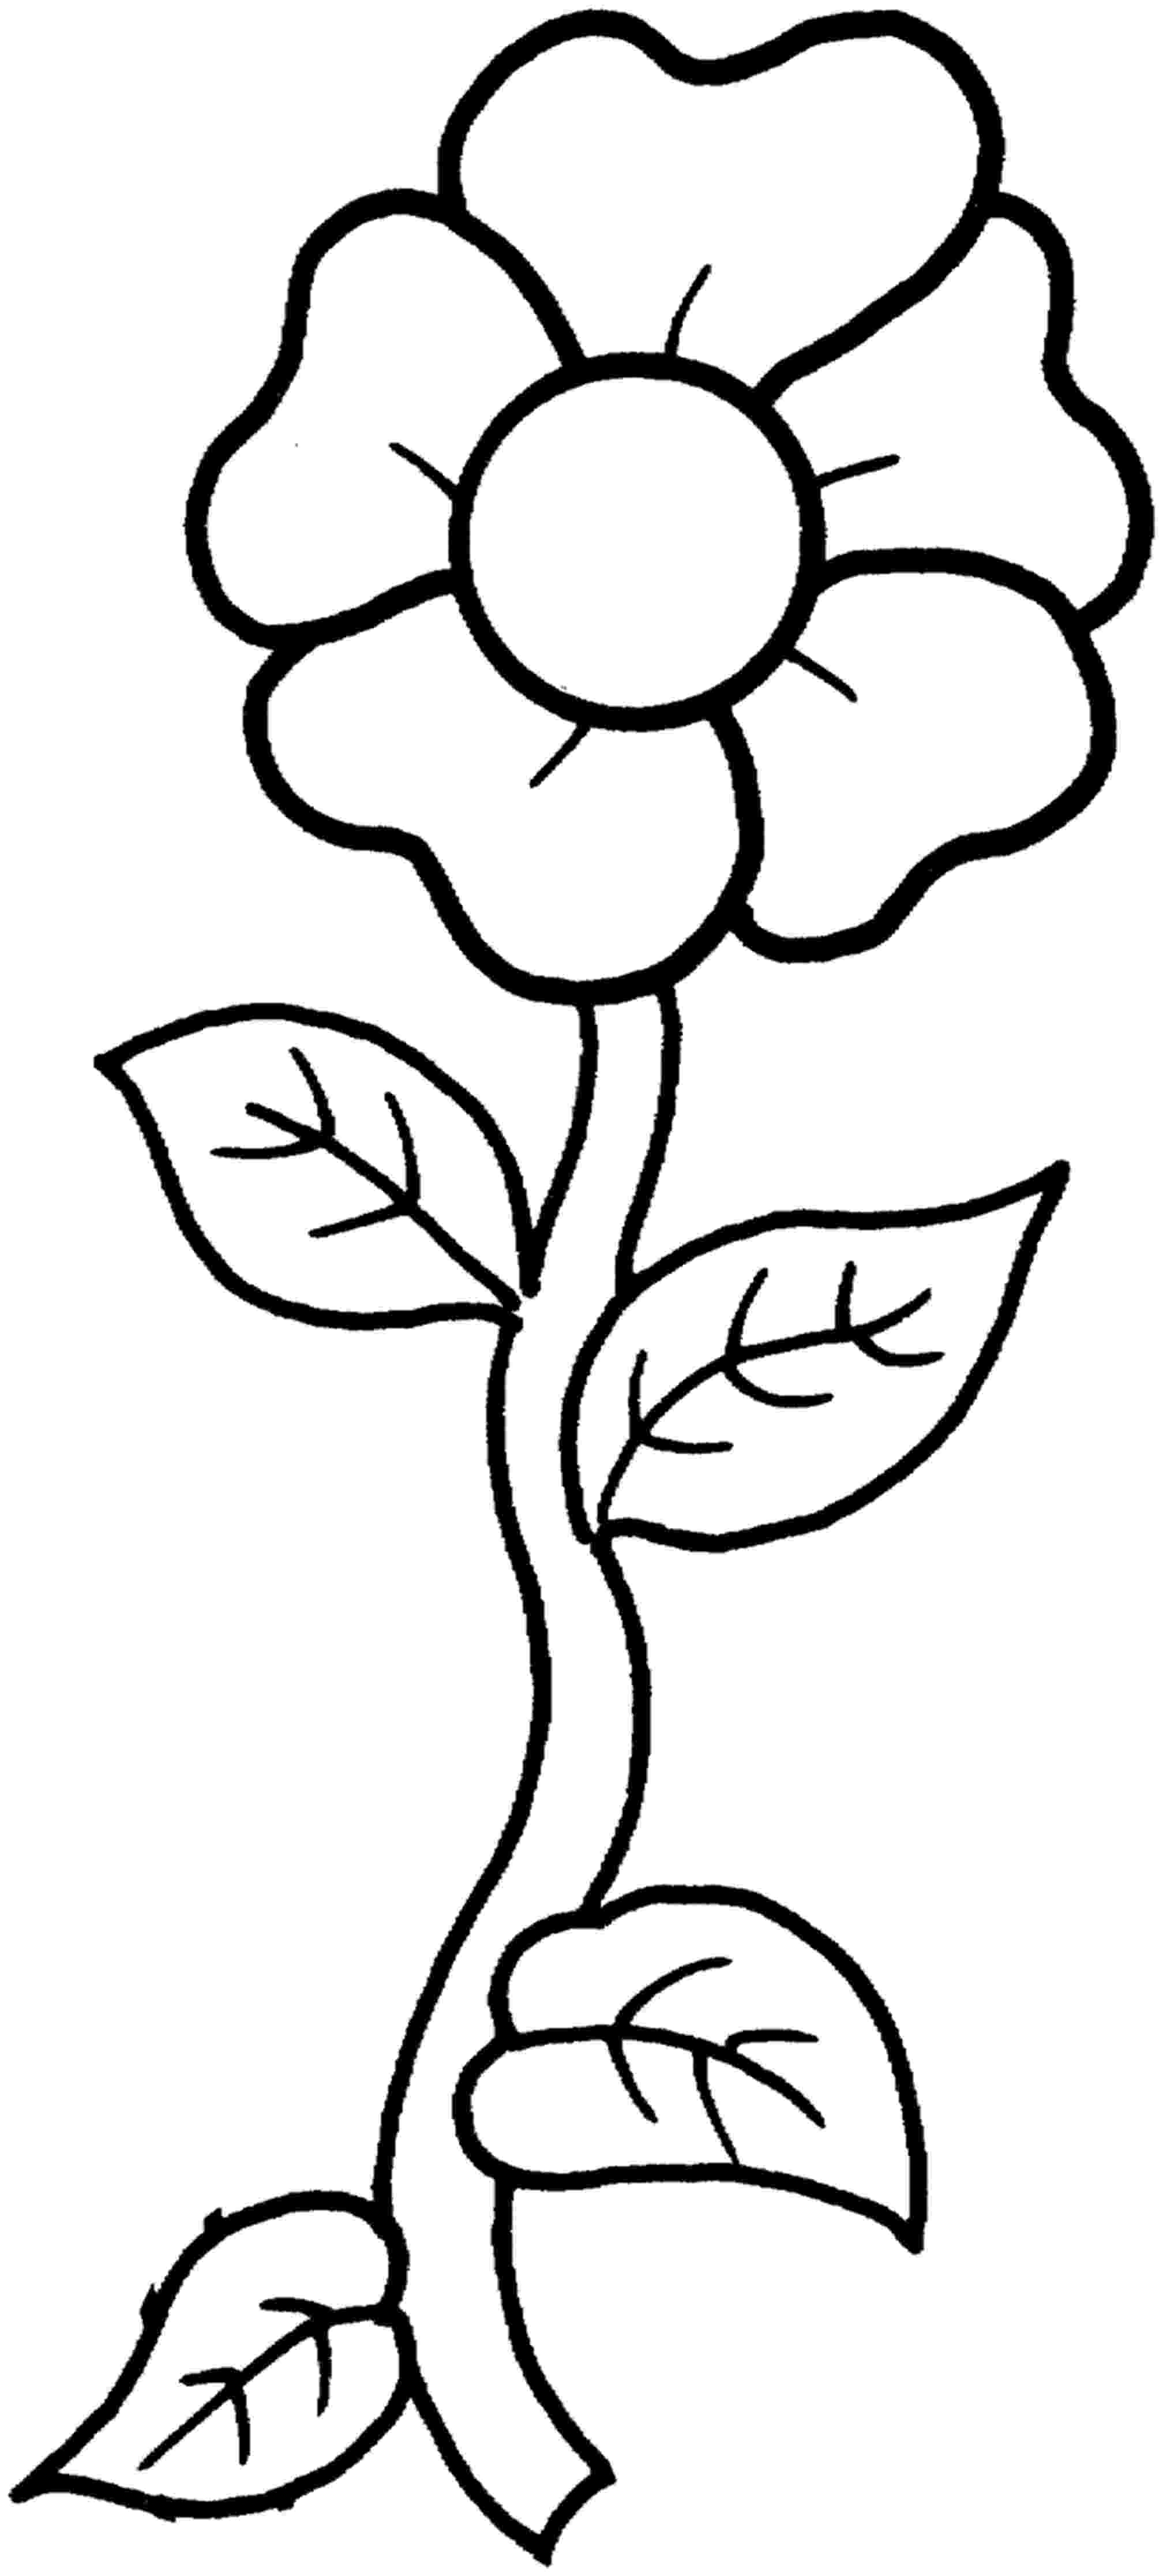 printable flower coloring pages free printable flower coloring pages for kids best printable pages coloring flower